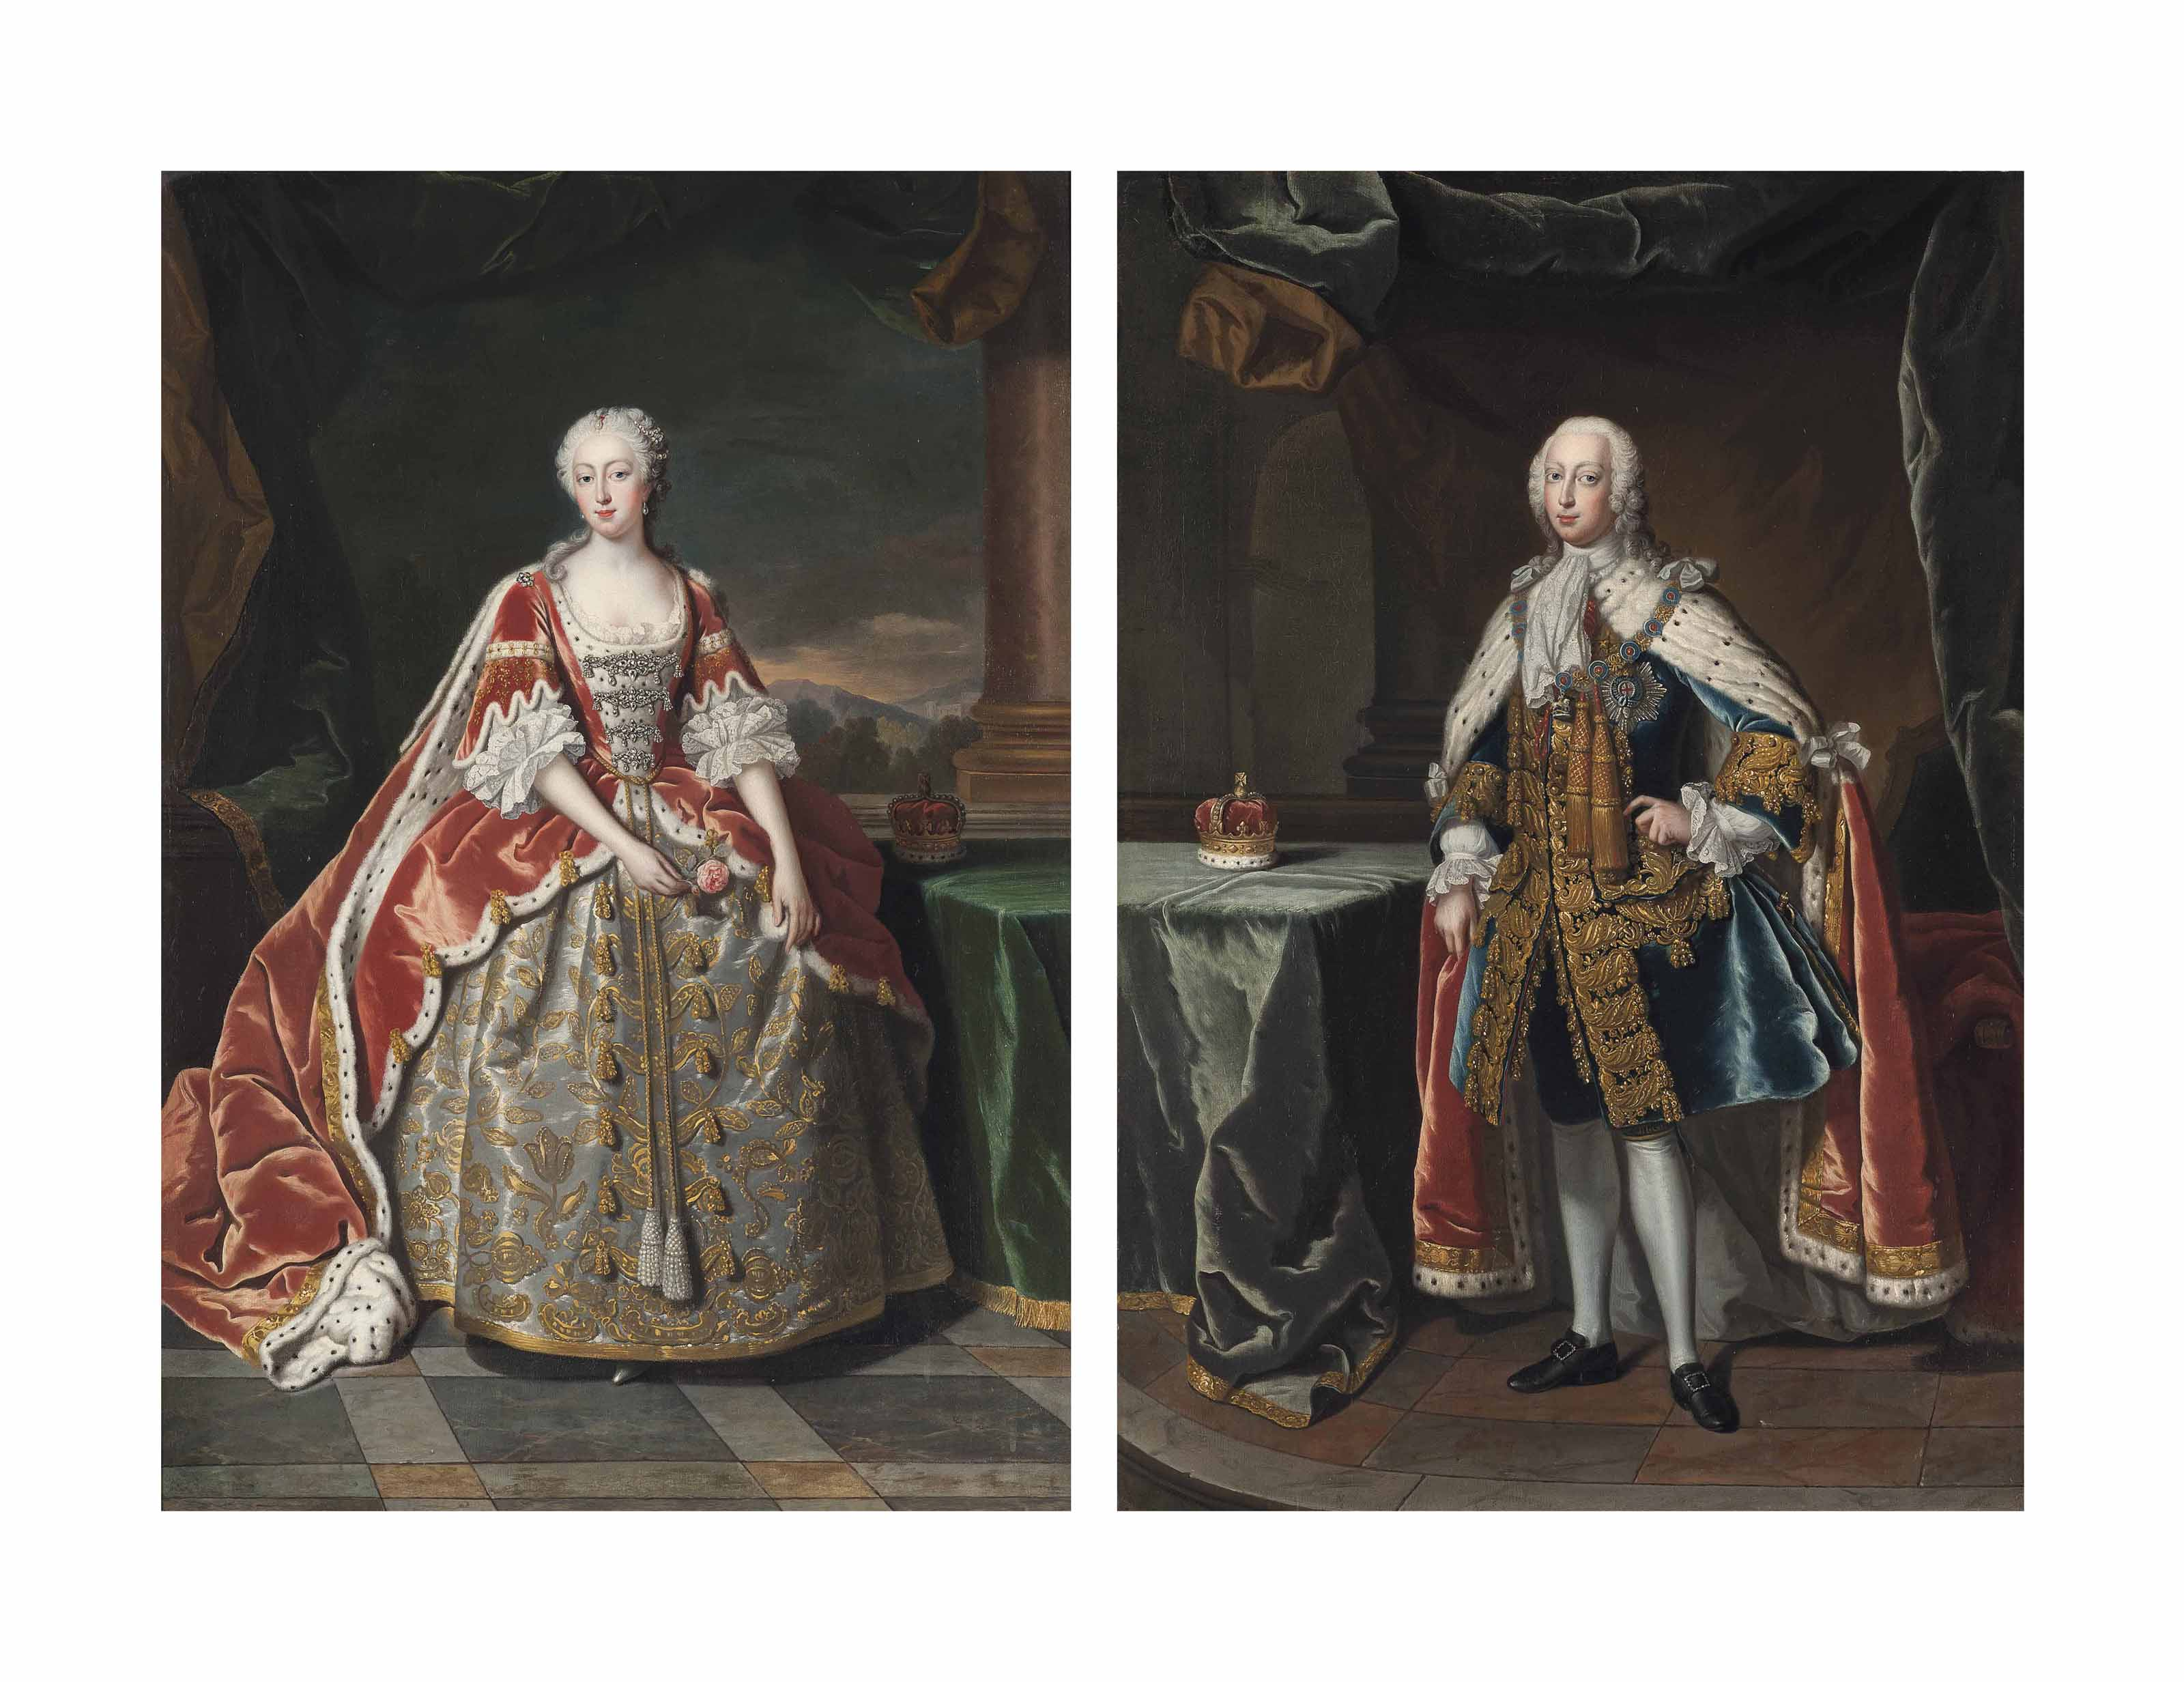 Portrait of Frederick (1707-1751), Prince of Wales, small full-length, in robes of state, with the Star of the Garter, beside a table with his coronet; and Portrait of Augusta (1719-1772), Princess of Wales, small full-length, in a laced dress and robes of state, beside a table with her coronet